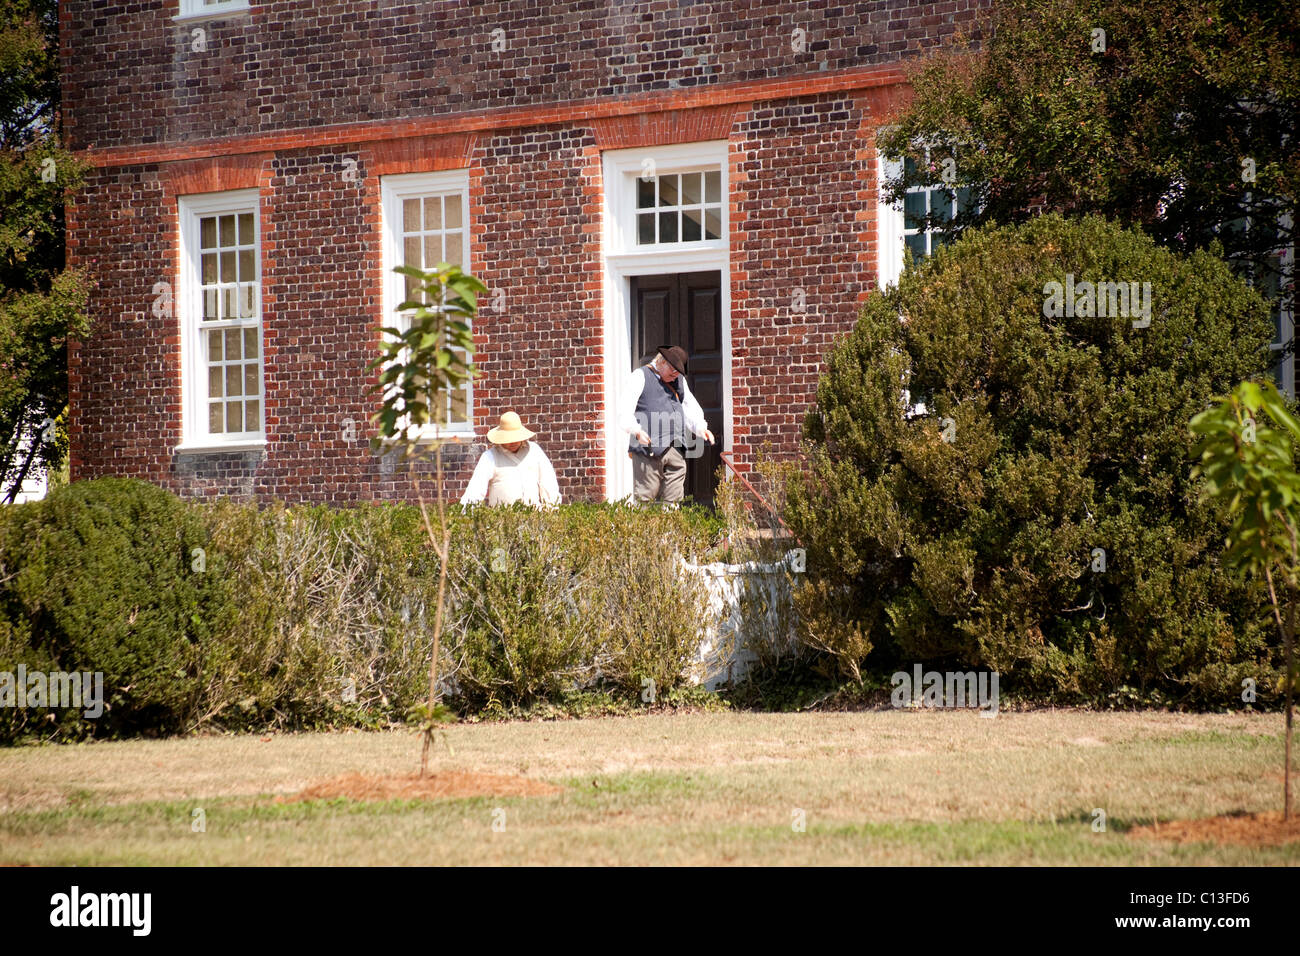 George Wythe Stock Photos & George Wythe Stock Images - Alamy